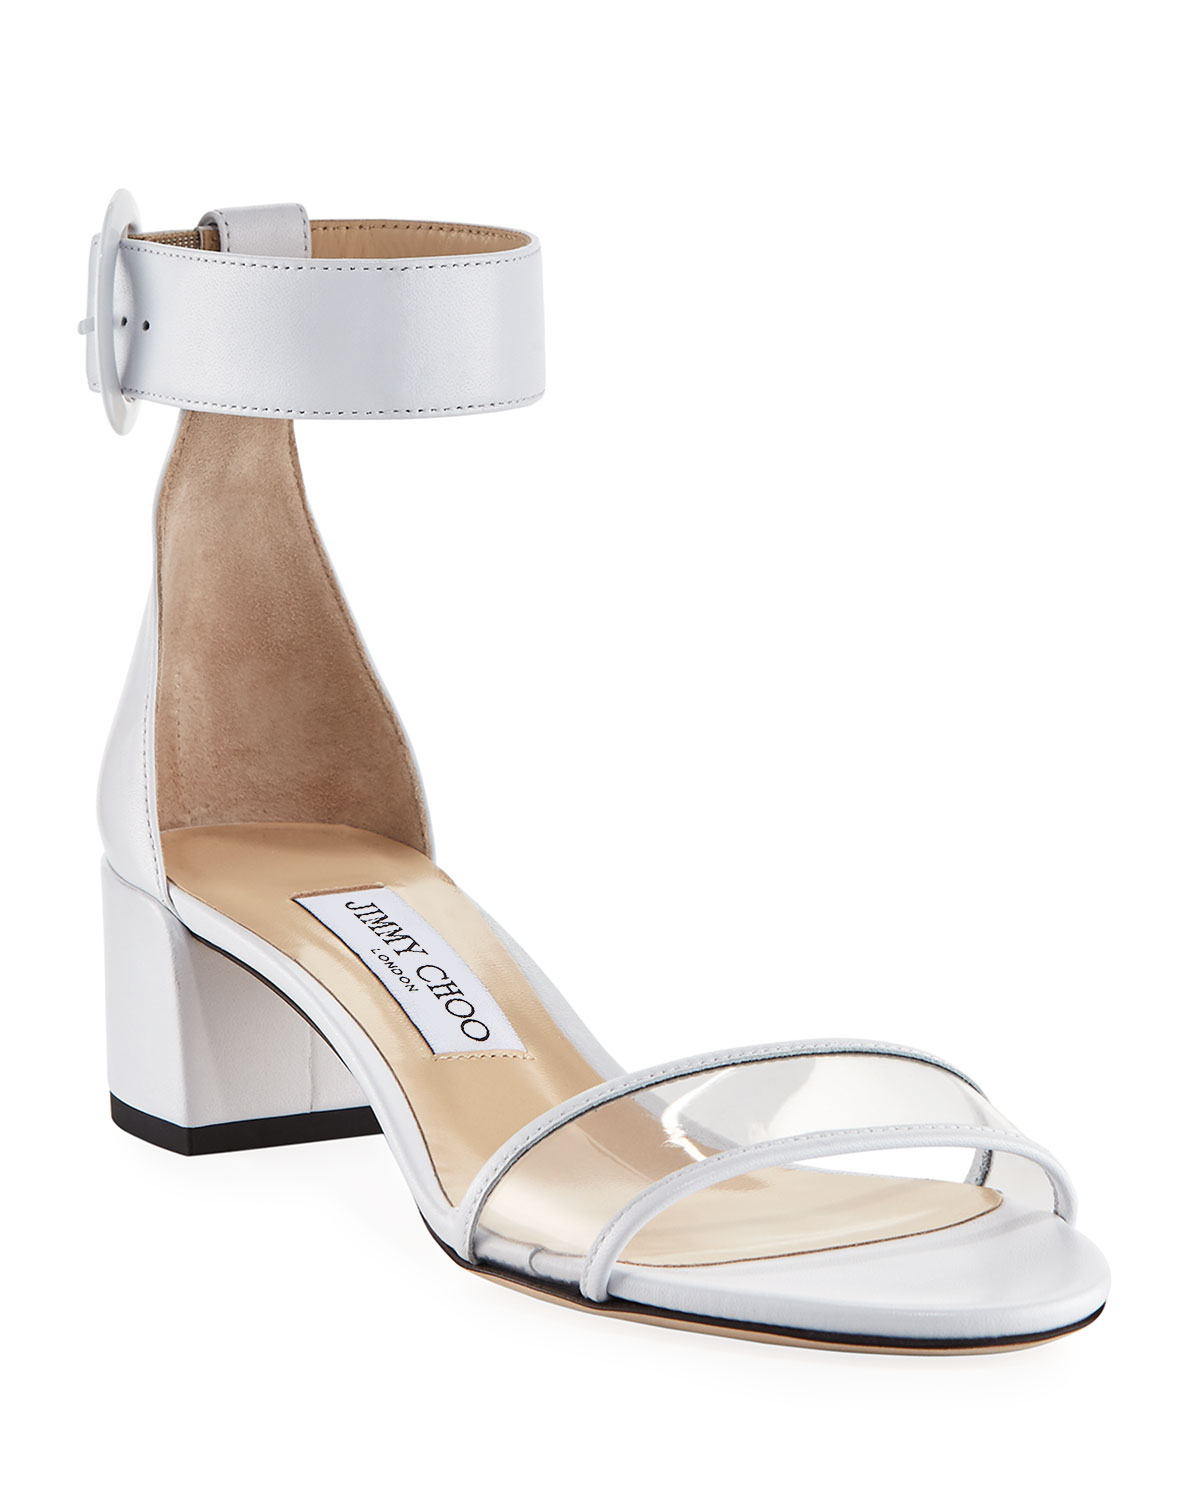 0a79c8b911a Jimmy Choo Jaimie Leather and PVC Block-Heel Sandals